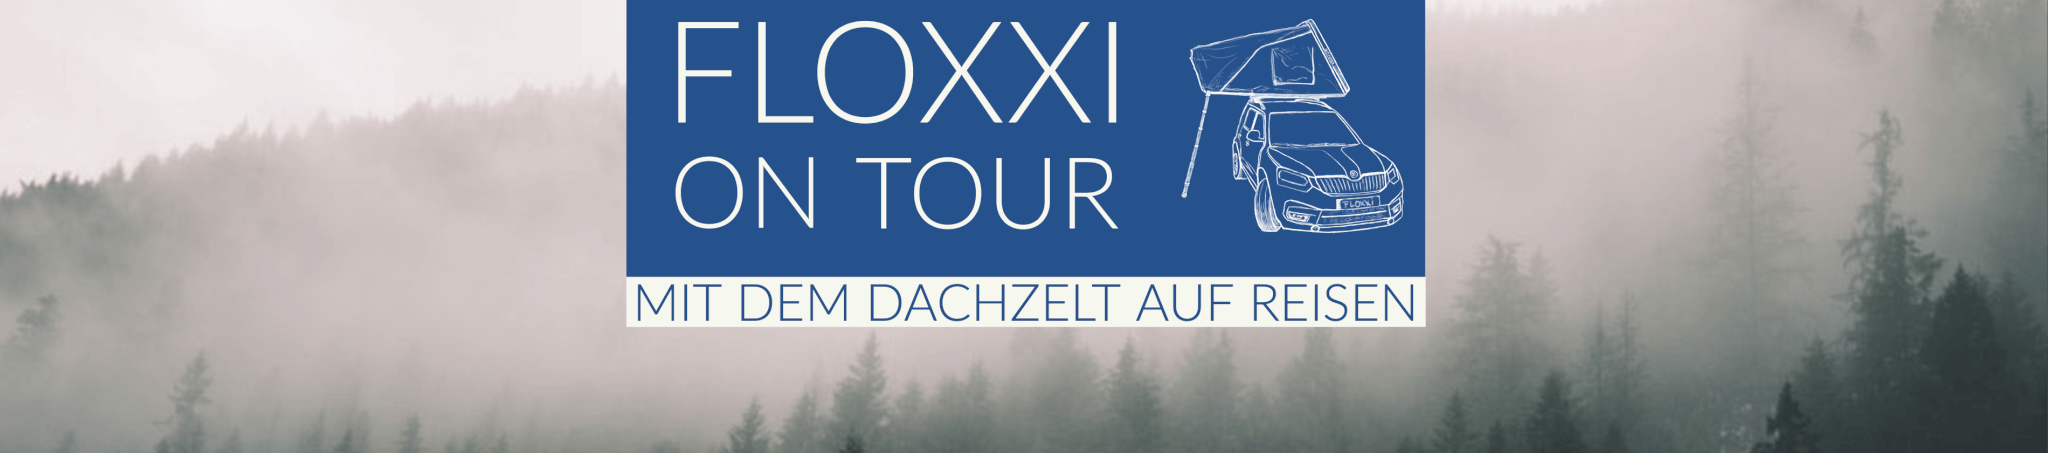 Floxxi on Tour